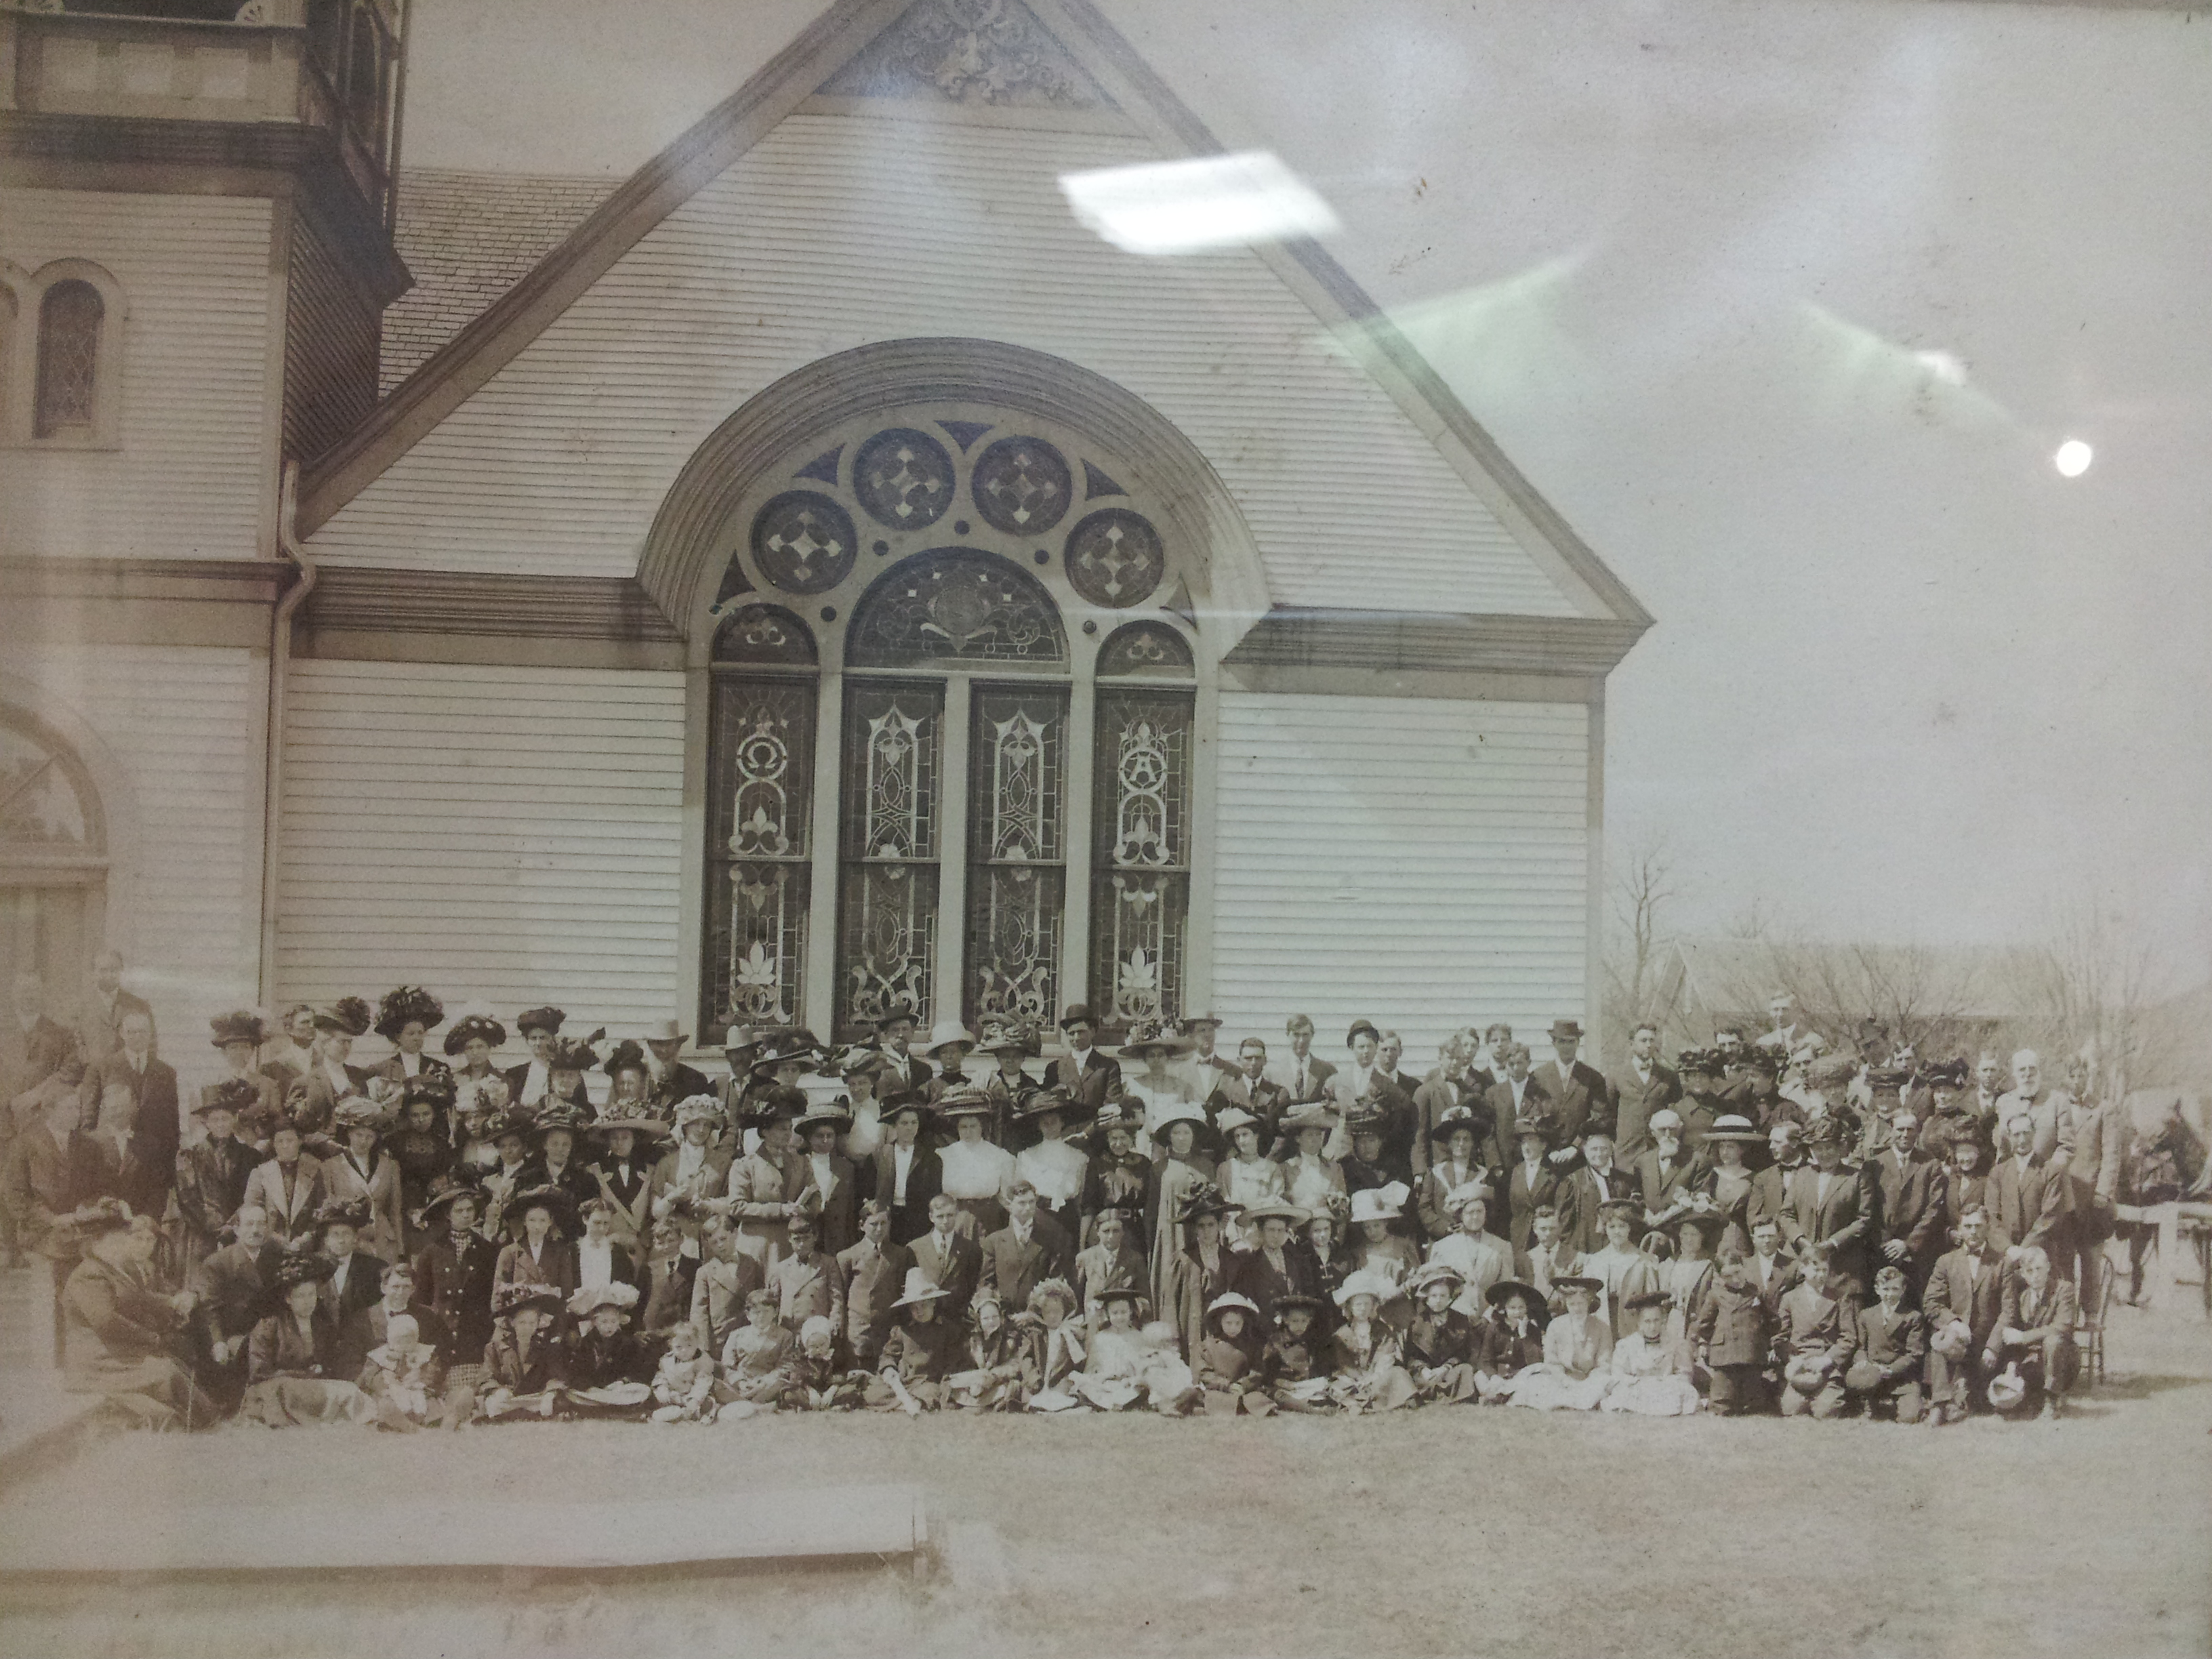 Church Congregation of 1911